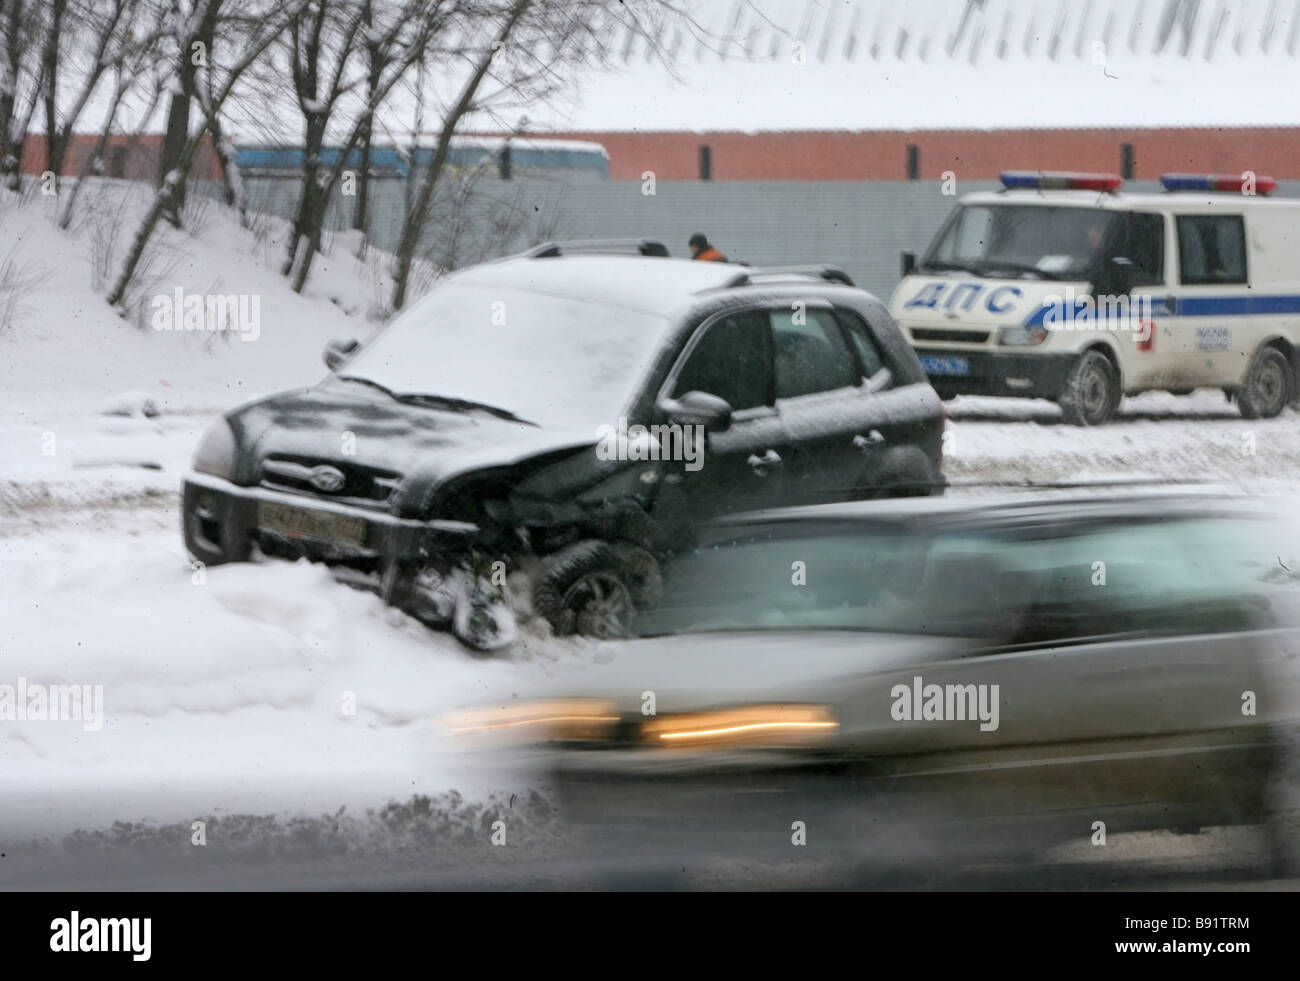 Stranded traffic after blizzard in Moscow - Stock Image